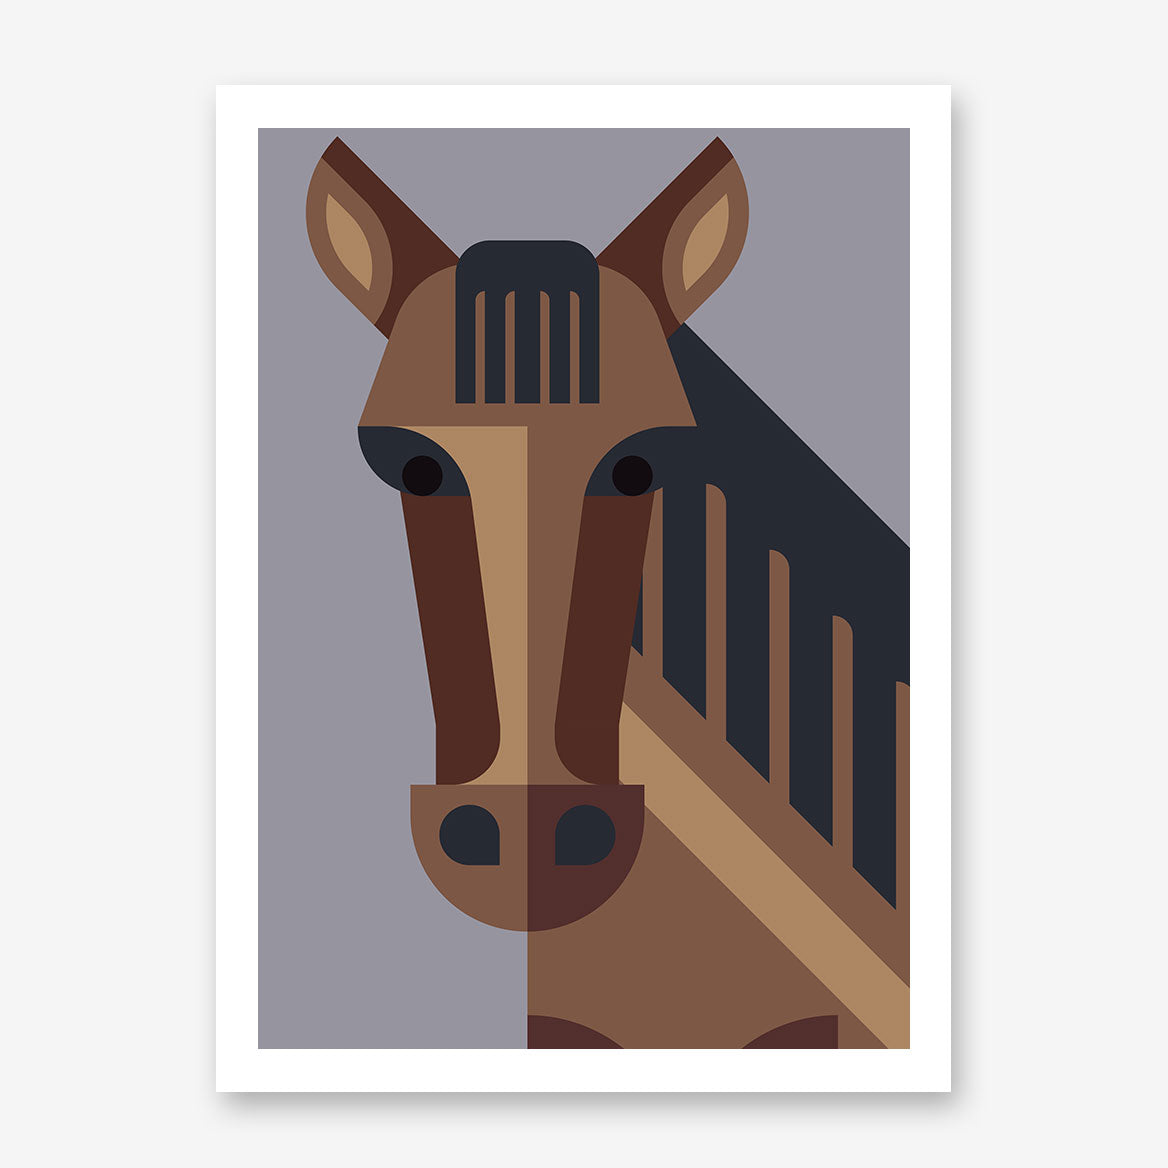 Geometric poster print with brown horse, on grey background